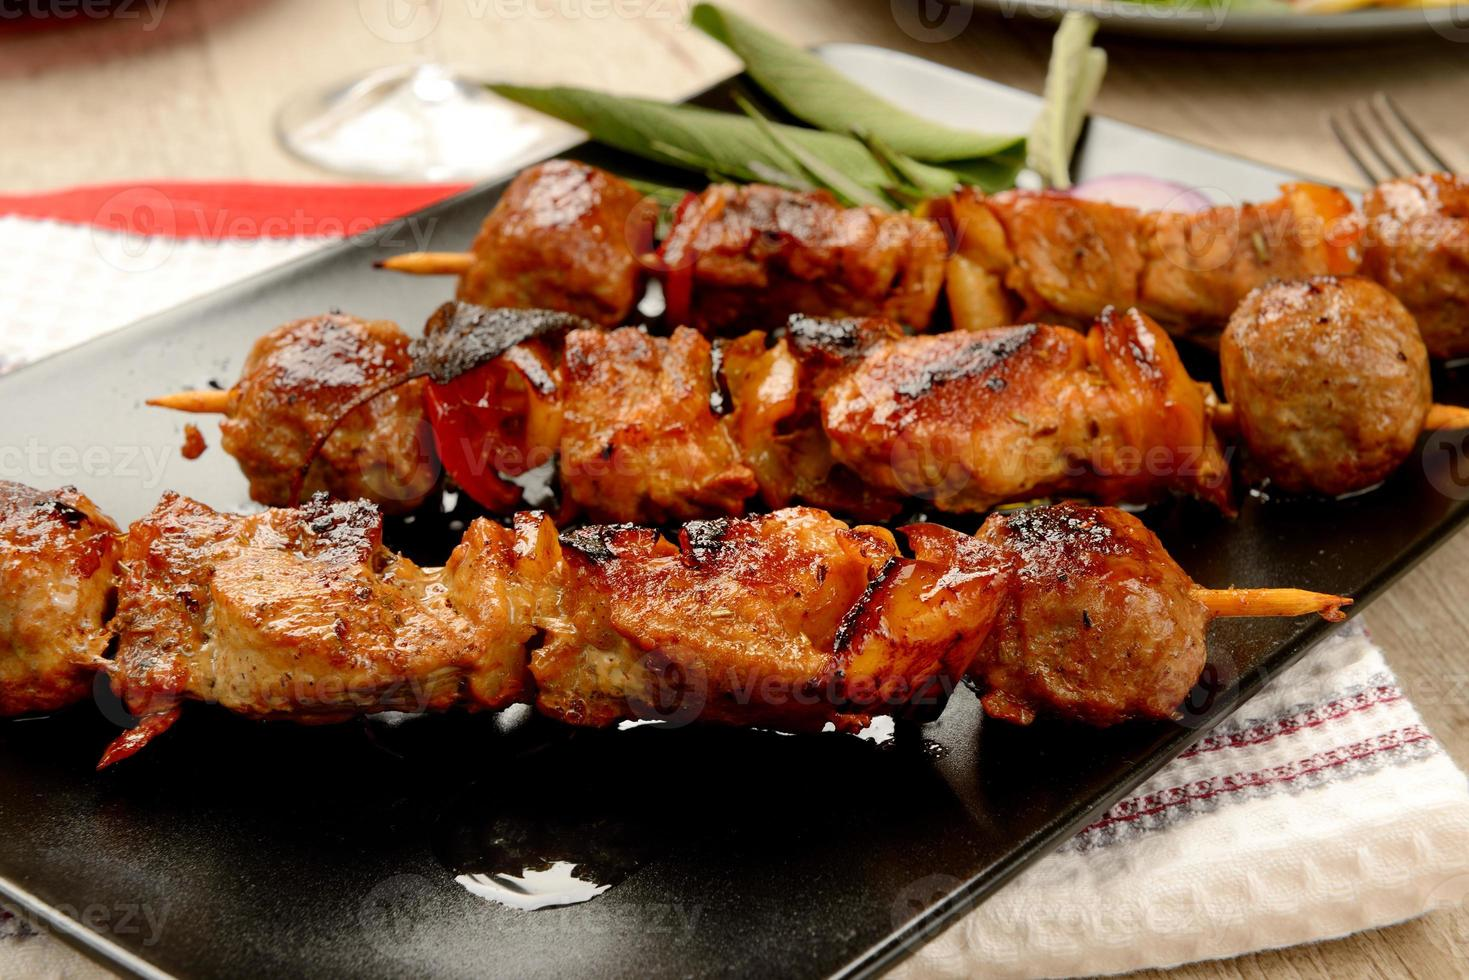 Skewers of meat cooked ready to eat photo